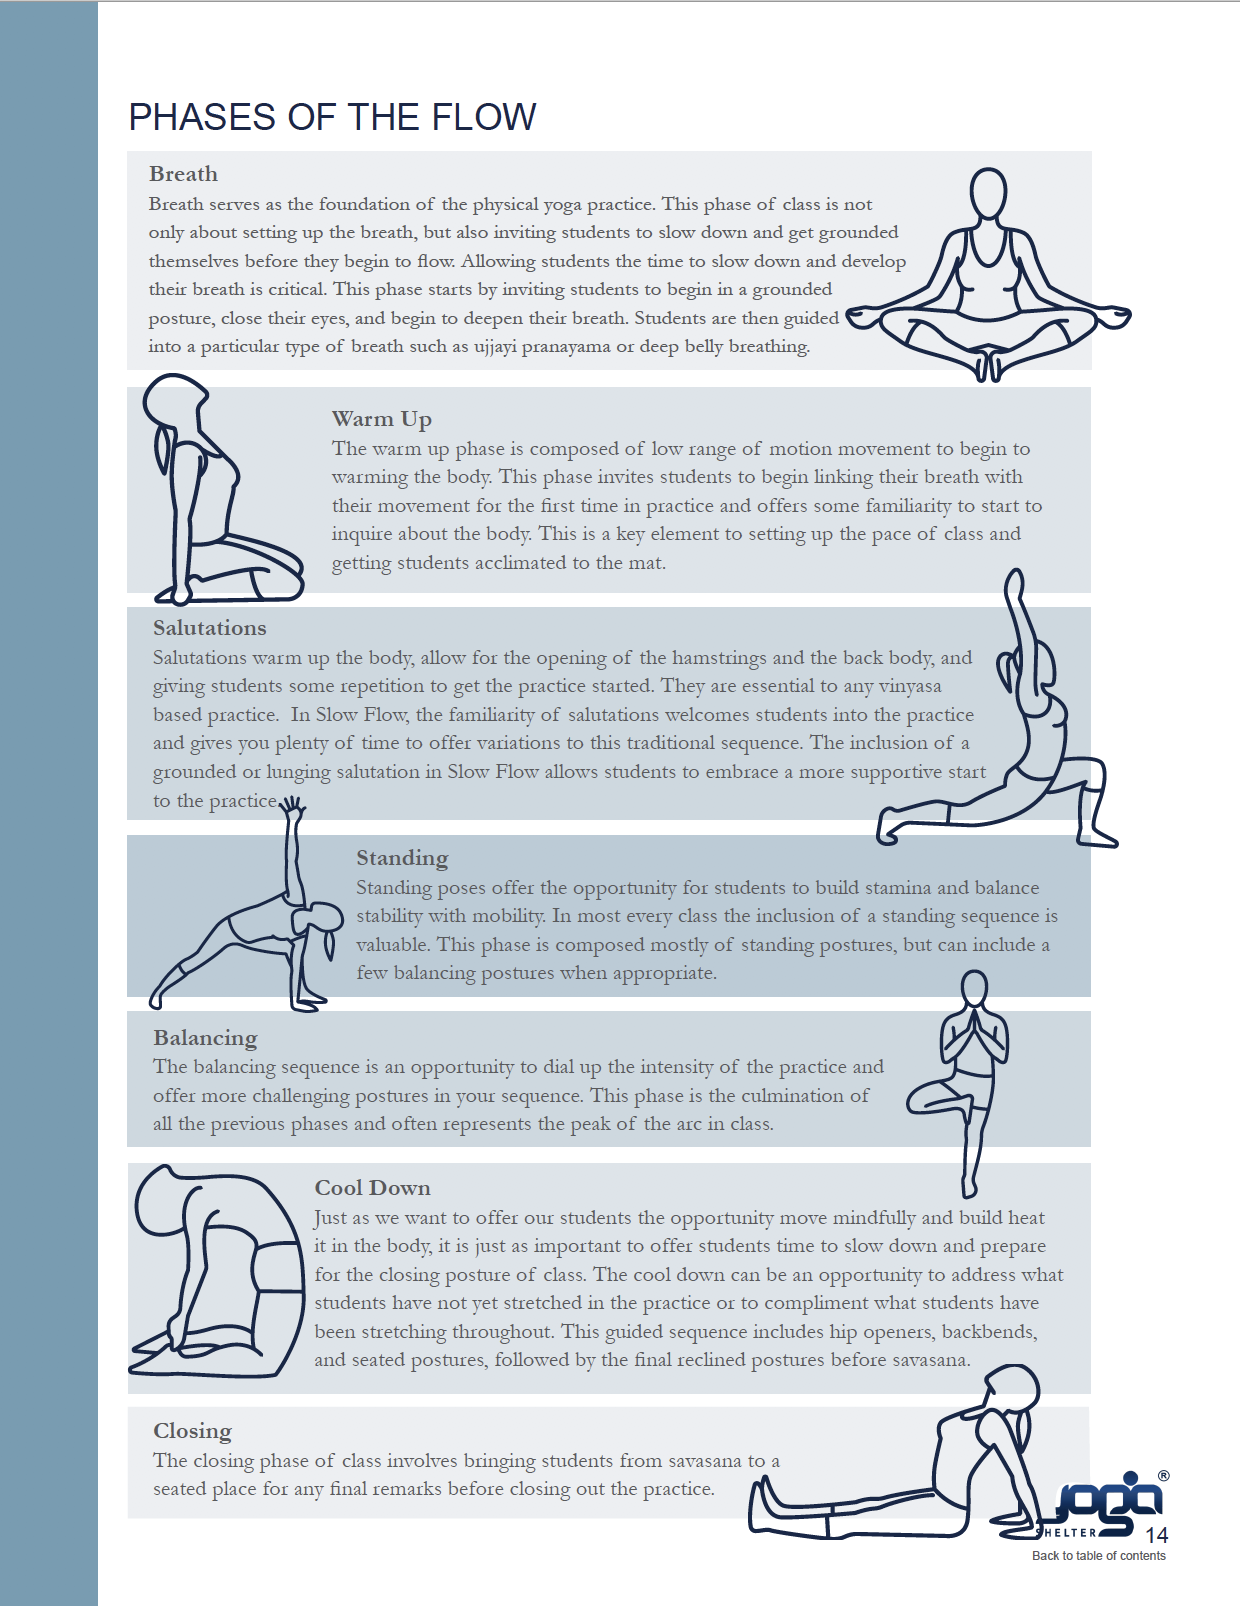 Yoga instruction sheet with yoga figures in poses